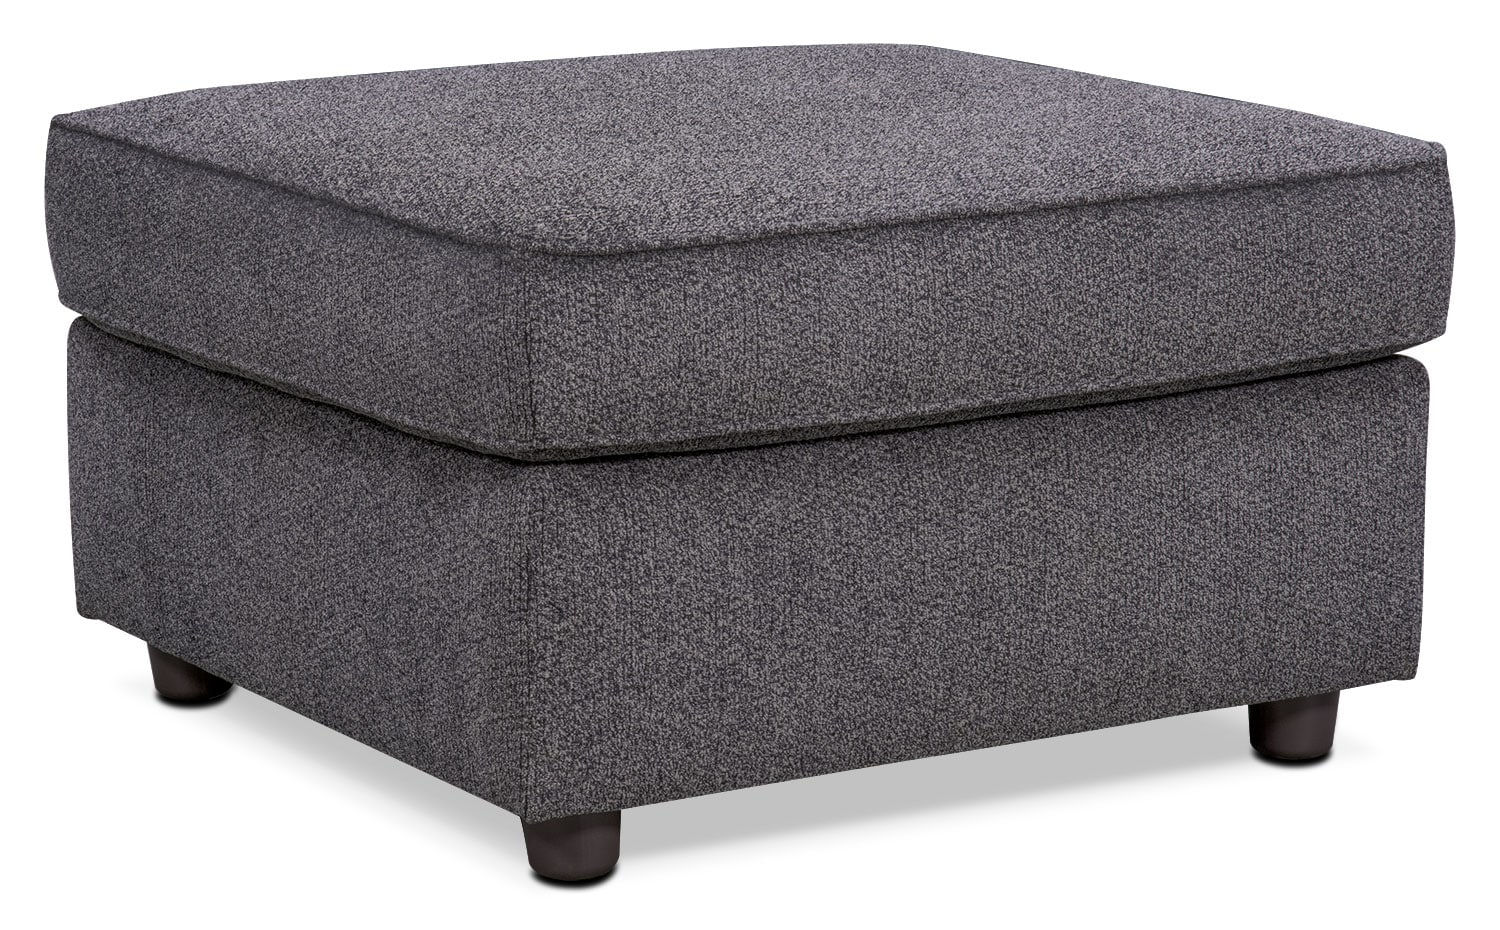 Living Room Furniture - Lakelyn Ottoman - Charcoal